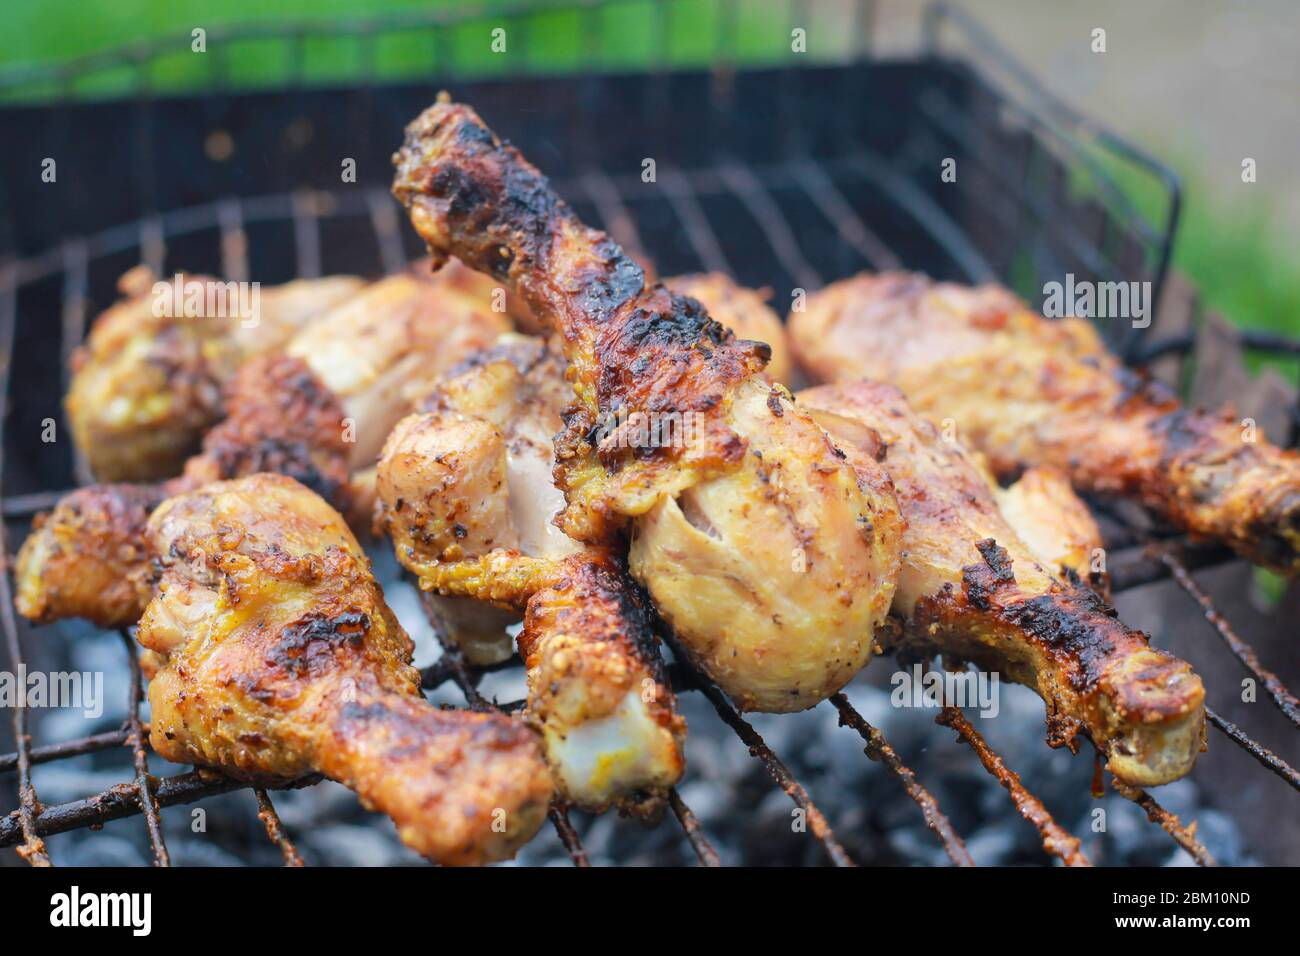 Grilled Chicken Legs Drumstick Charcoal Meat Closeup Stock Photo Alamy